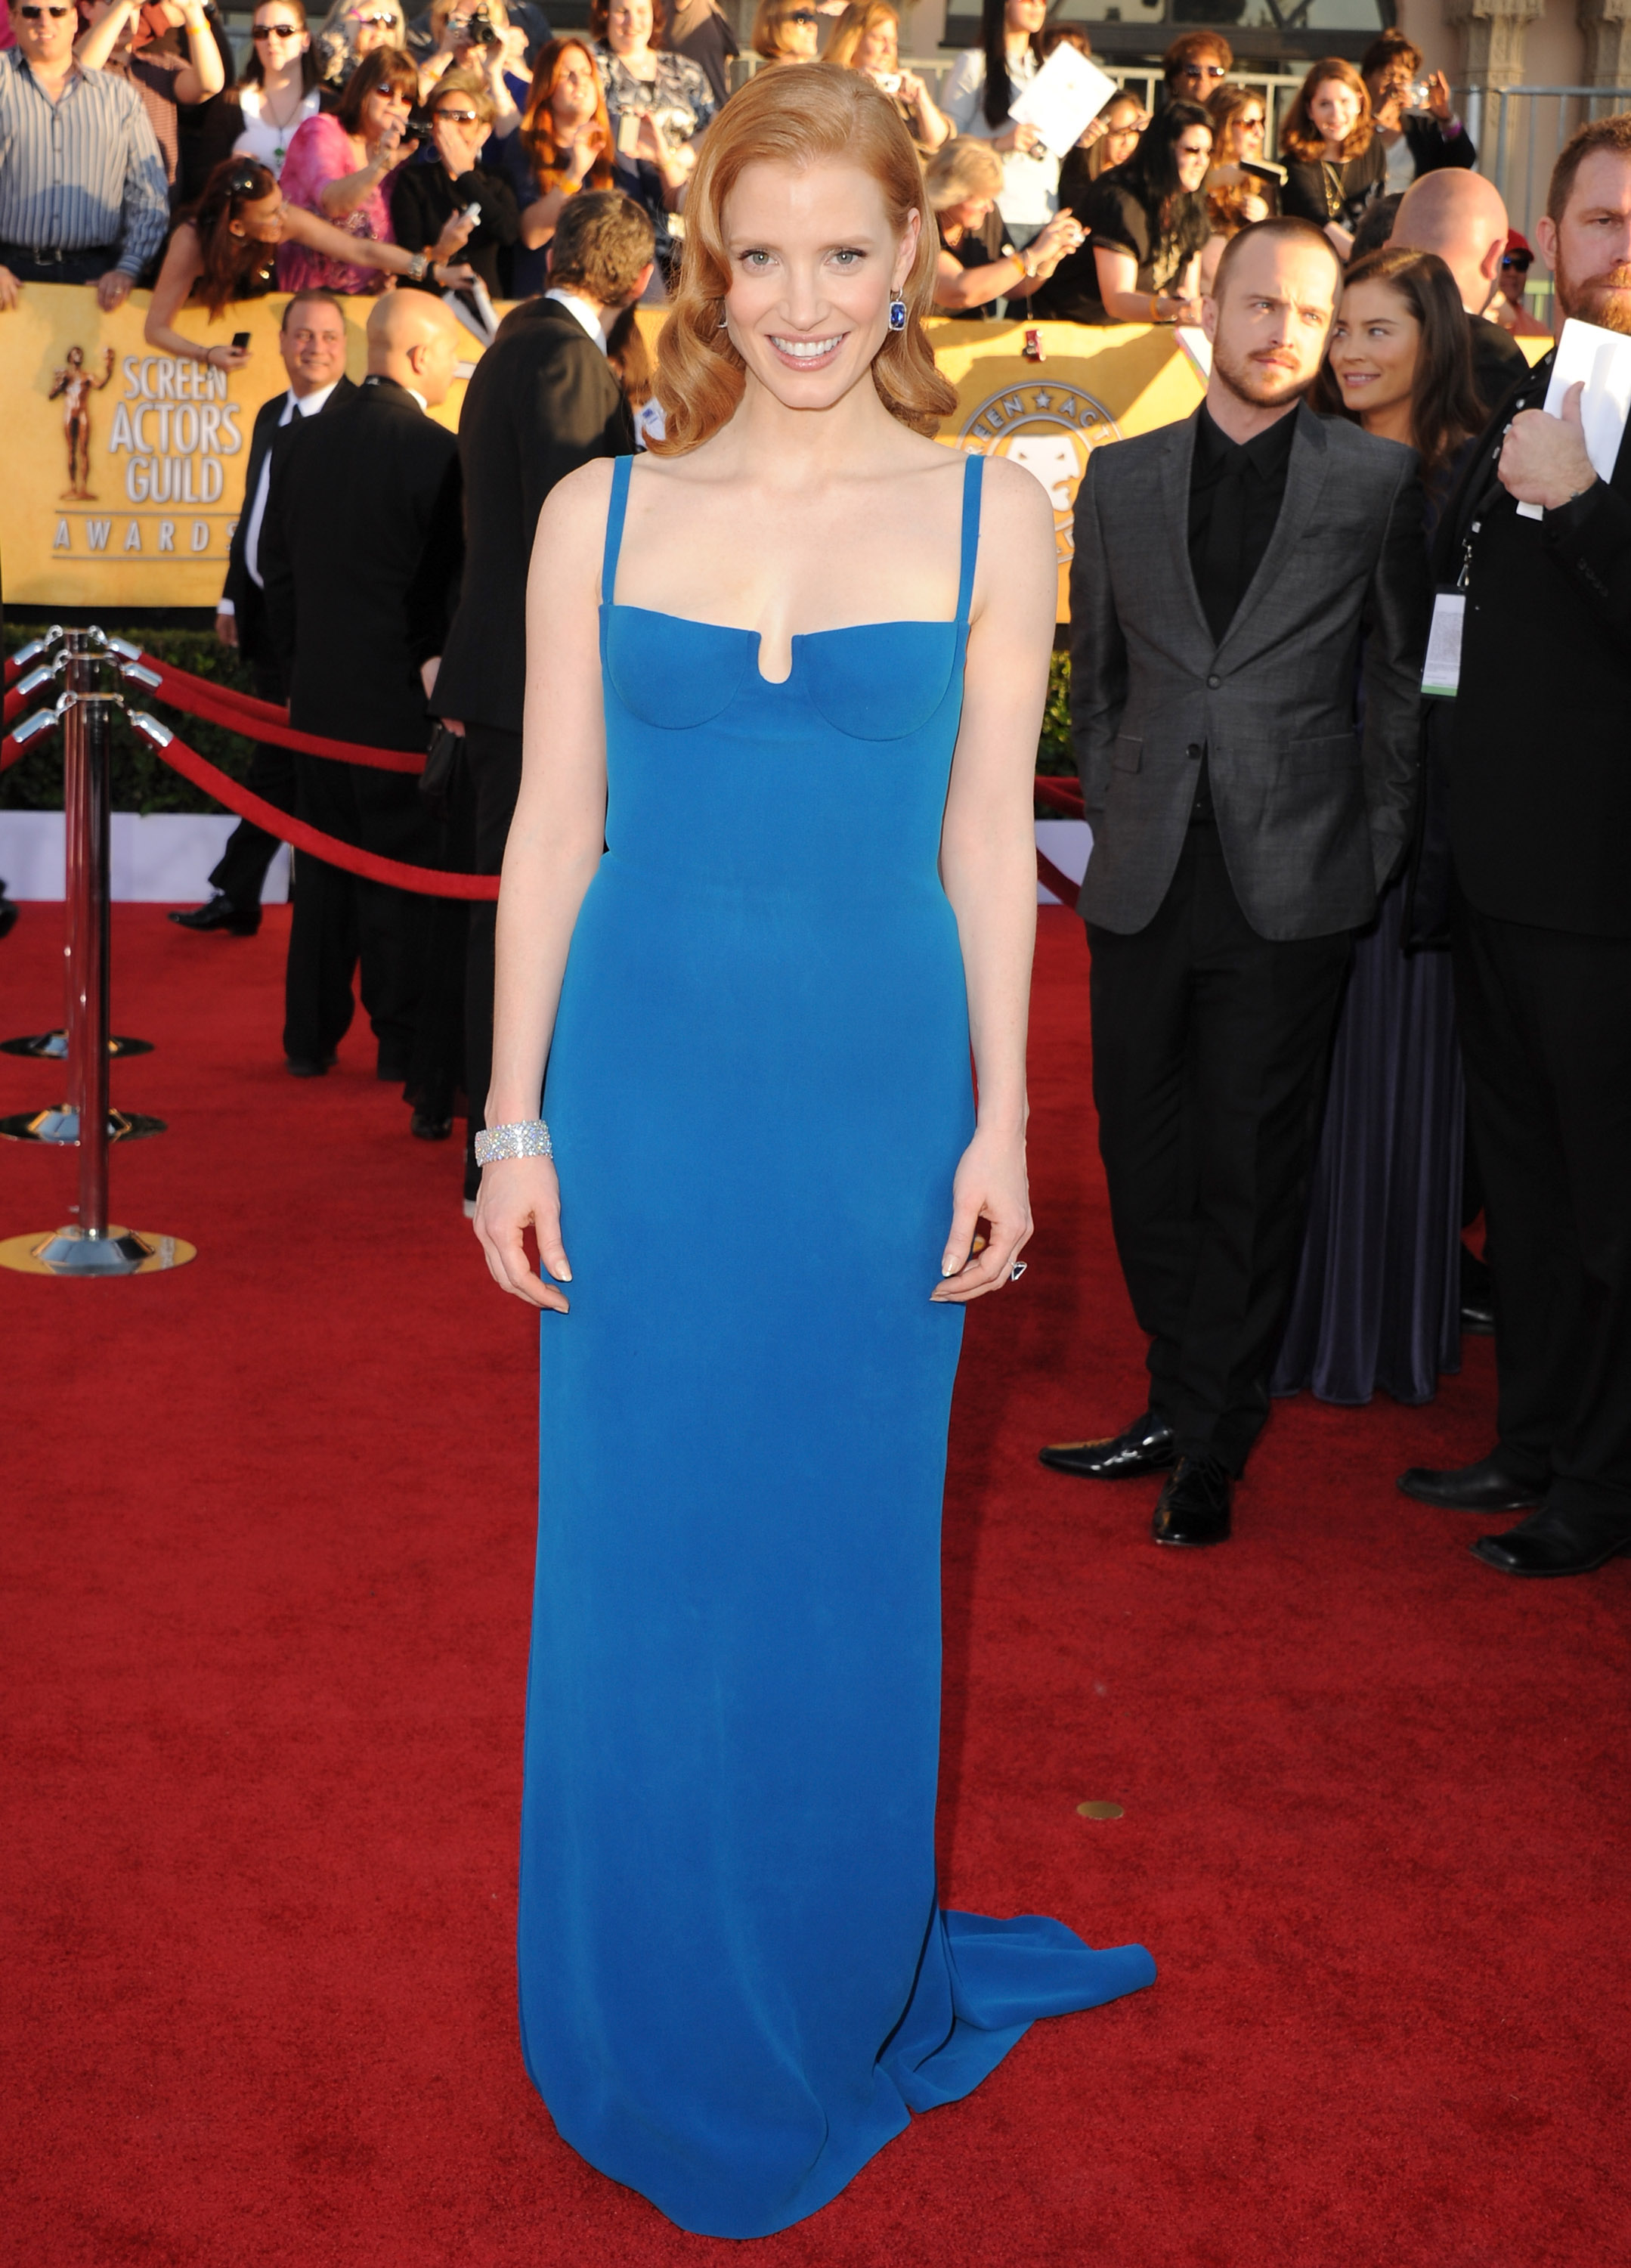 Jessica Chastain at the SAG Awards